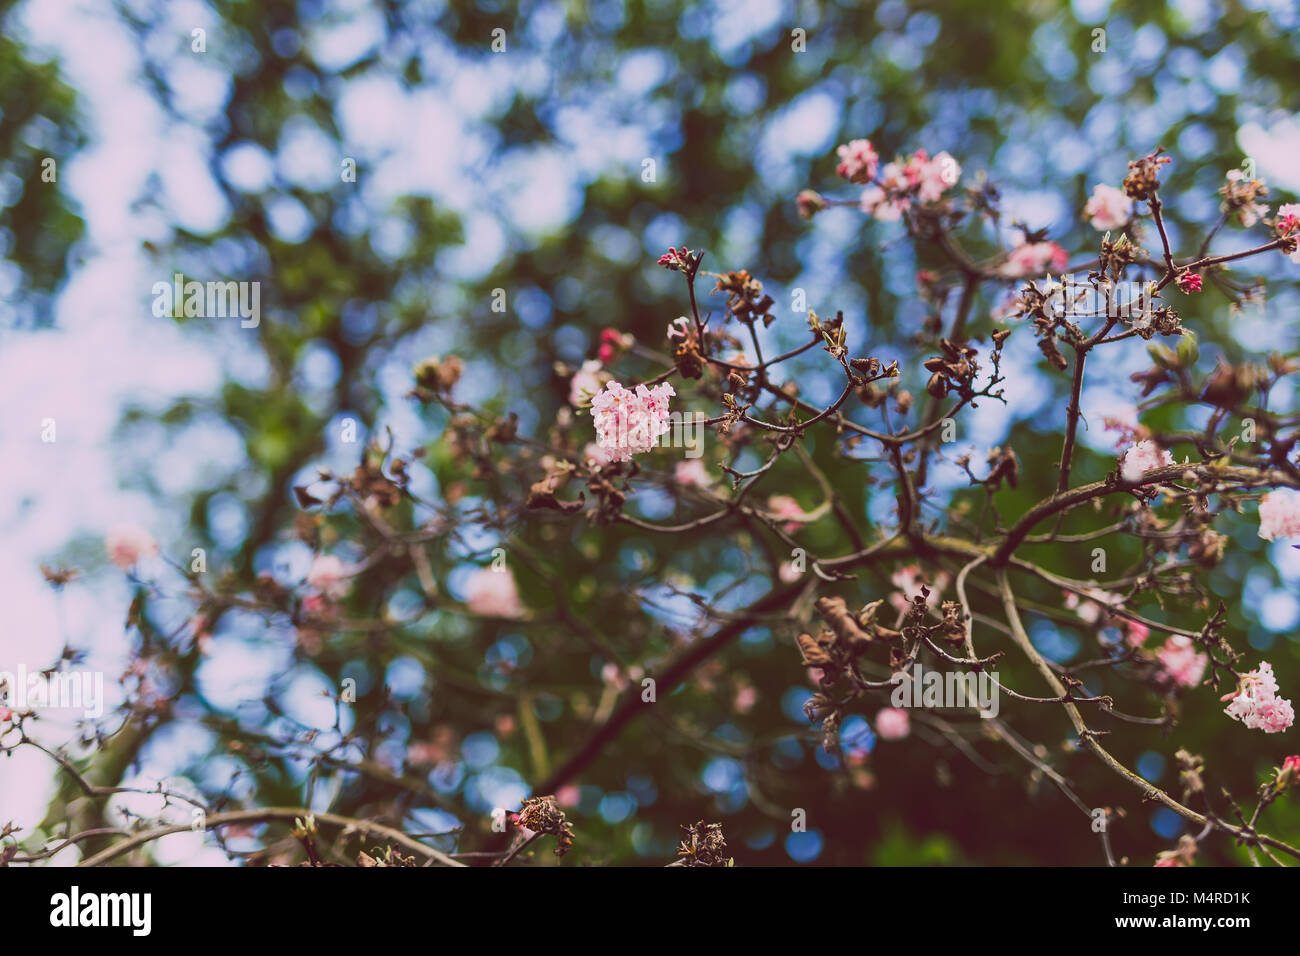 pink blossoms on a tree shot at extremely shallow depth of field in a very cold spring morning in Ireland - Stock Image